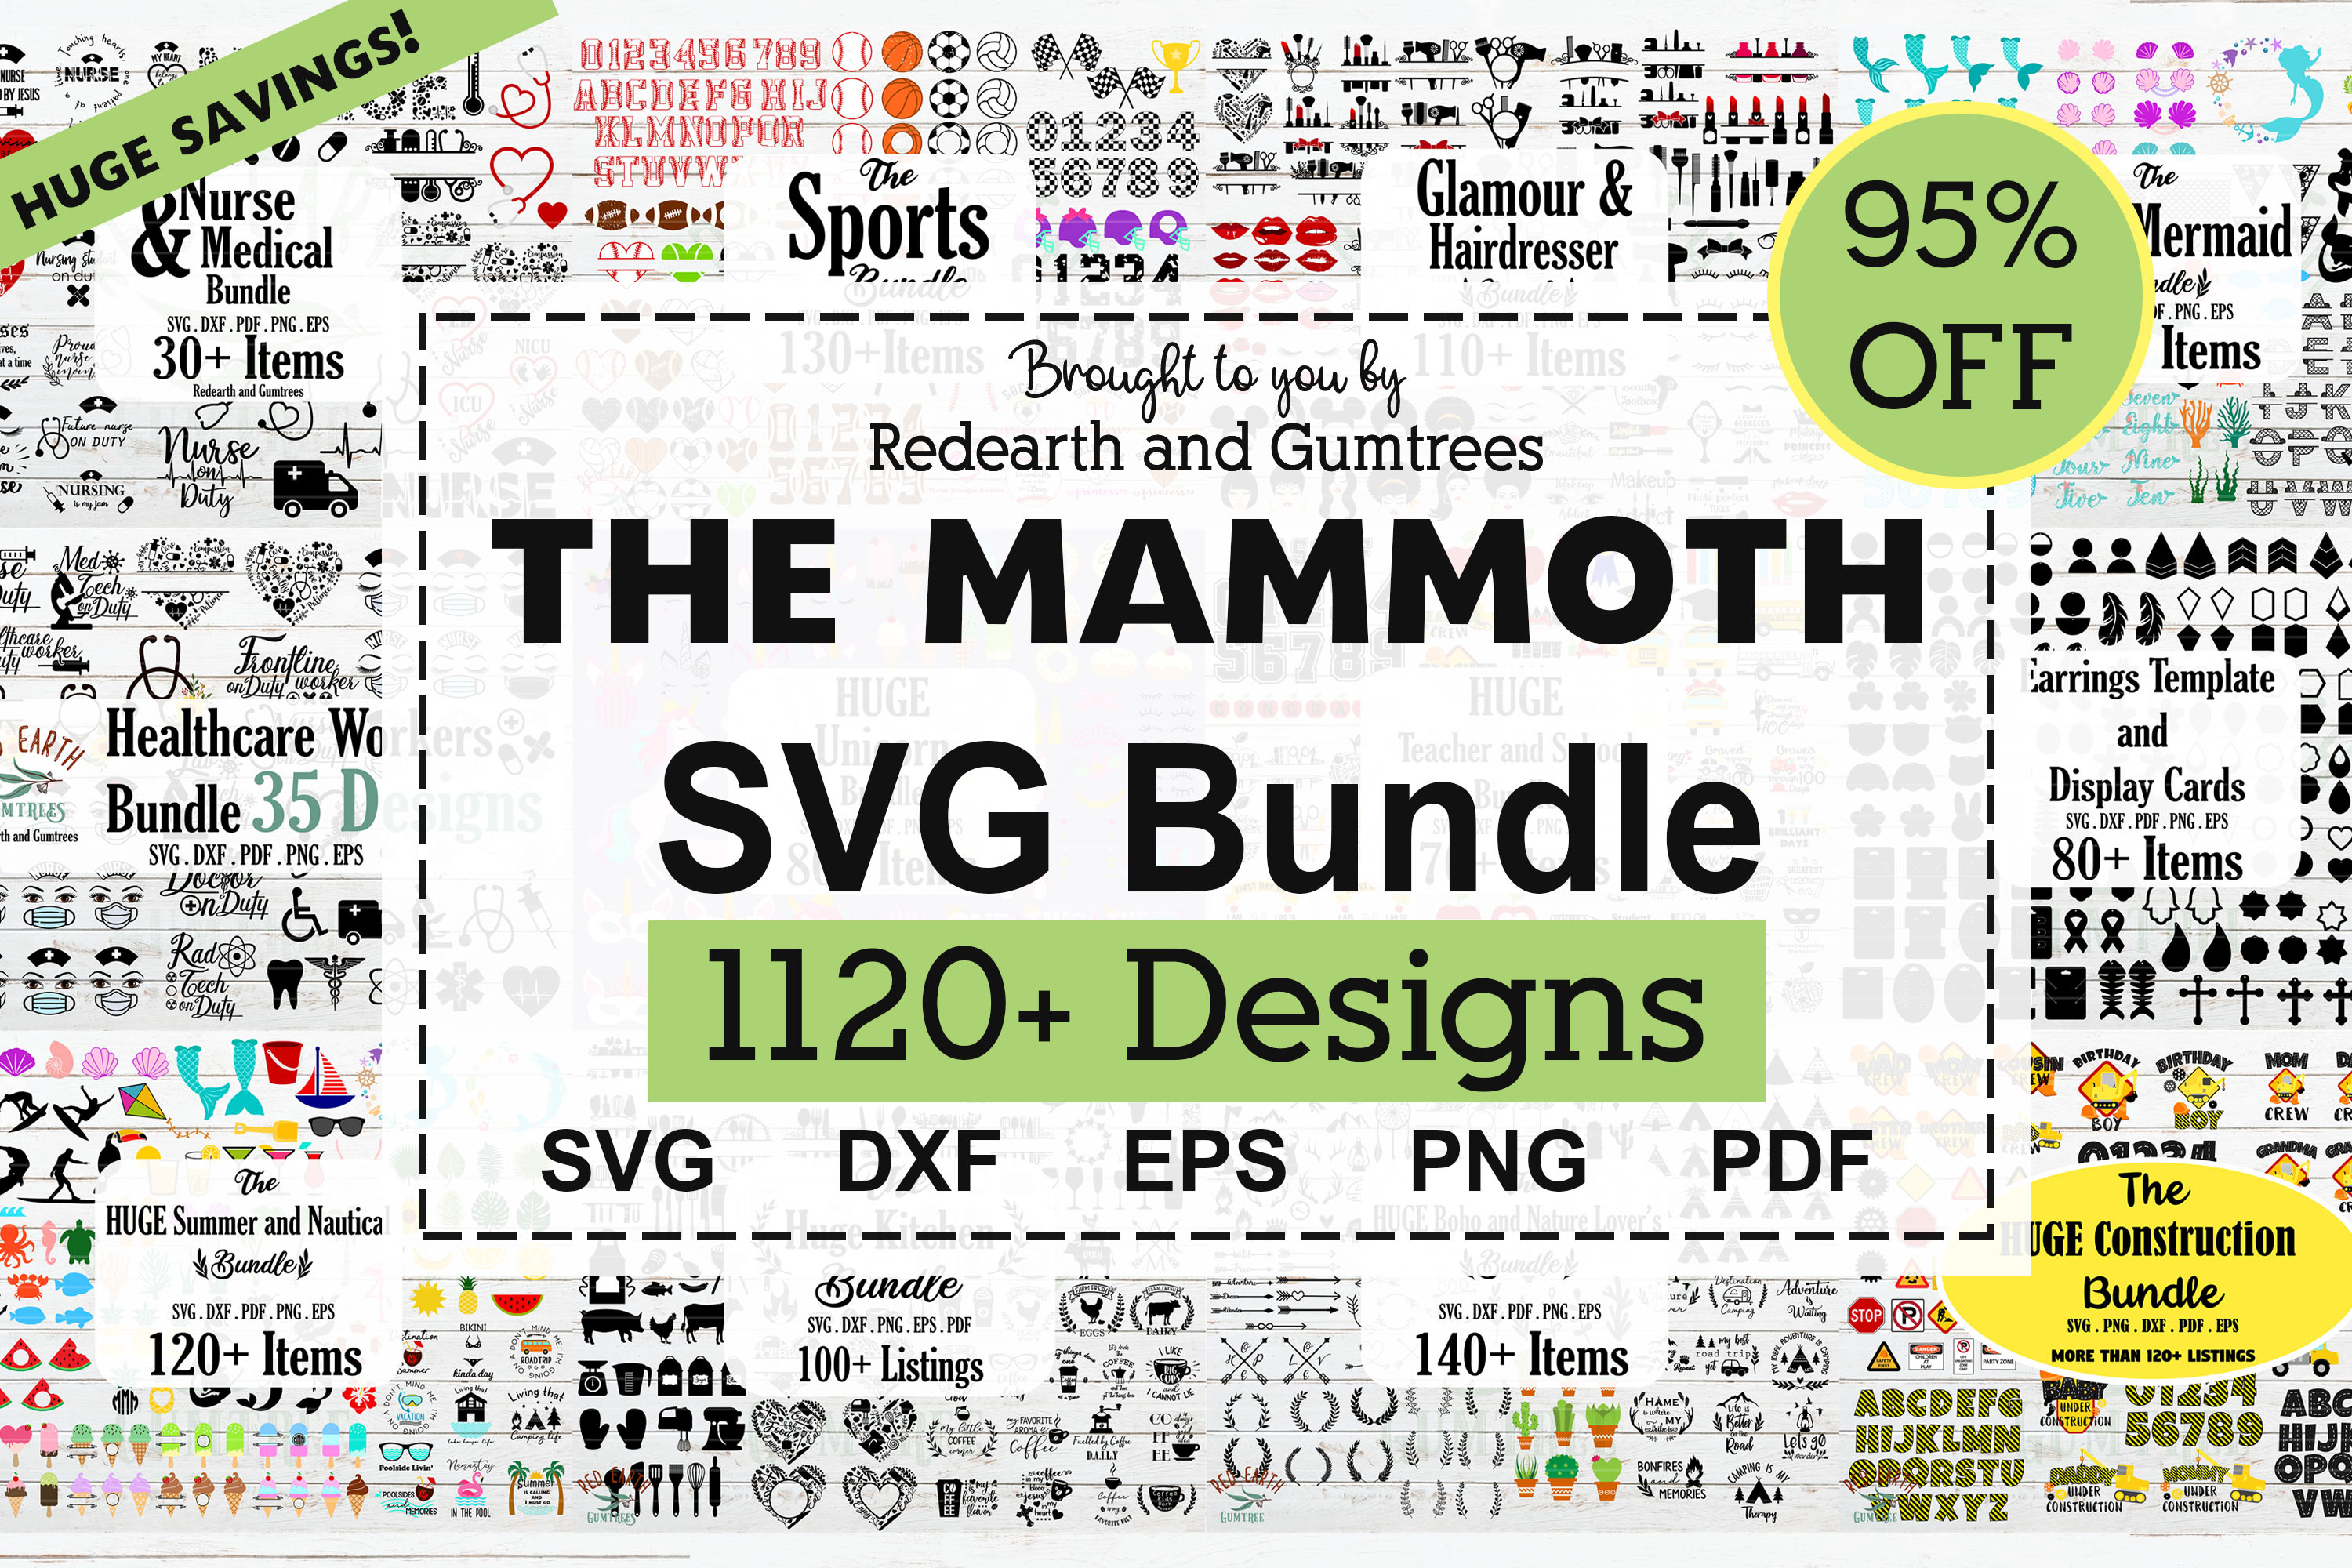 The Amazing Mammoth Crafting Bundle SVG, PNG, EPS & DXF by Free SVG File